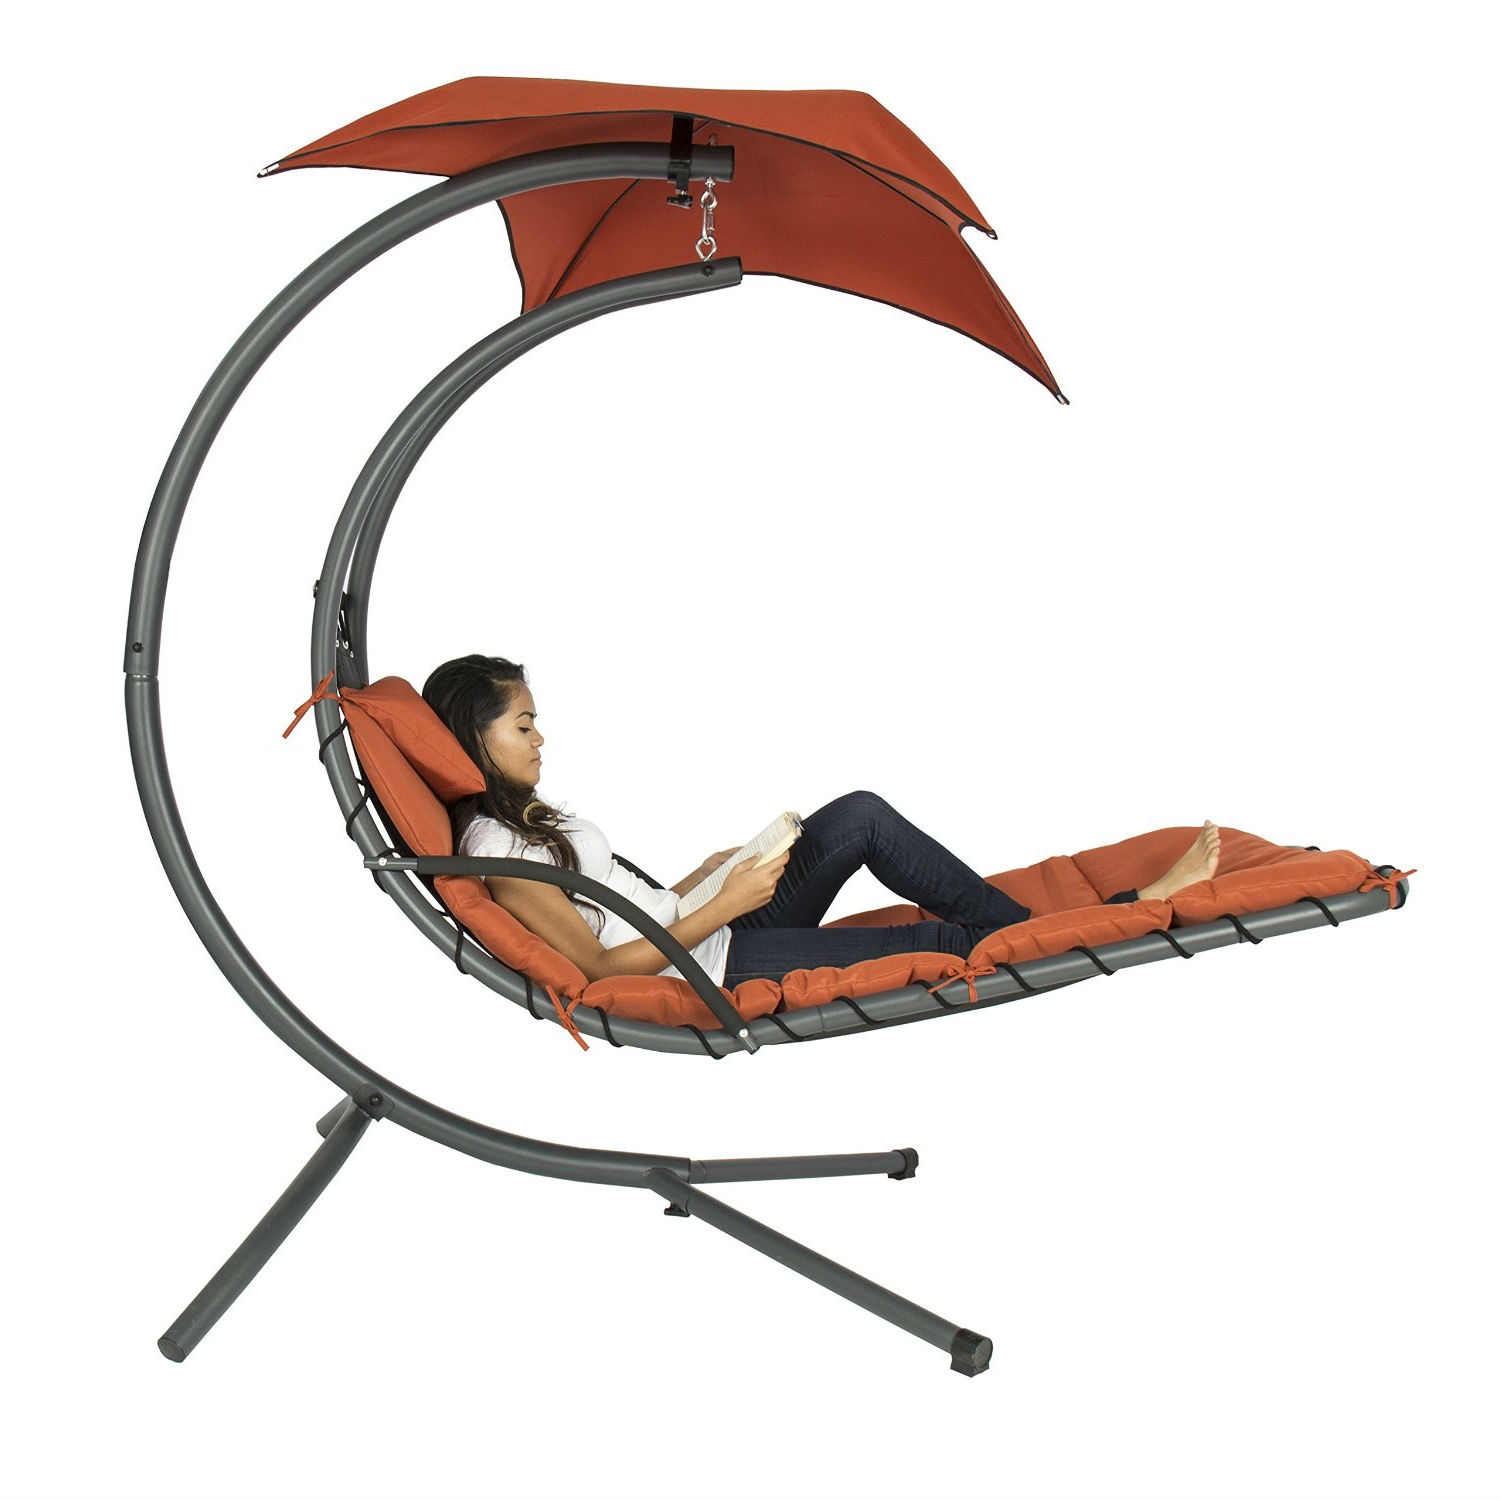 hanging chair mr price bedroom chairs for sale orange red single person modern chaise lounger hammock